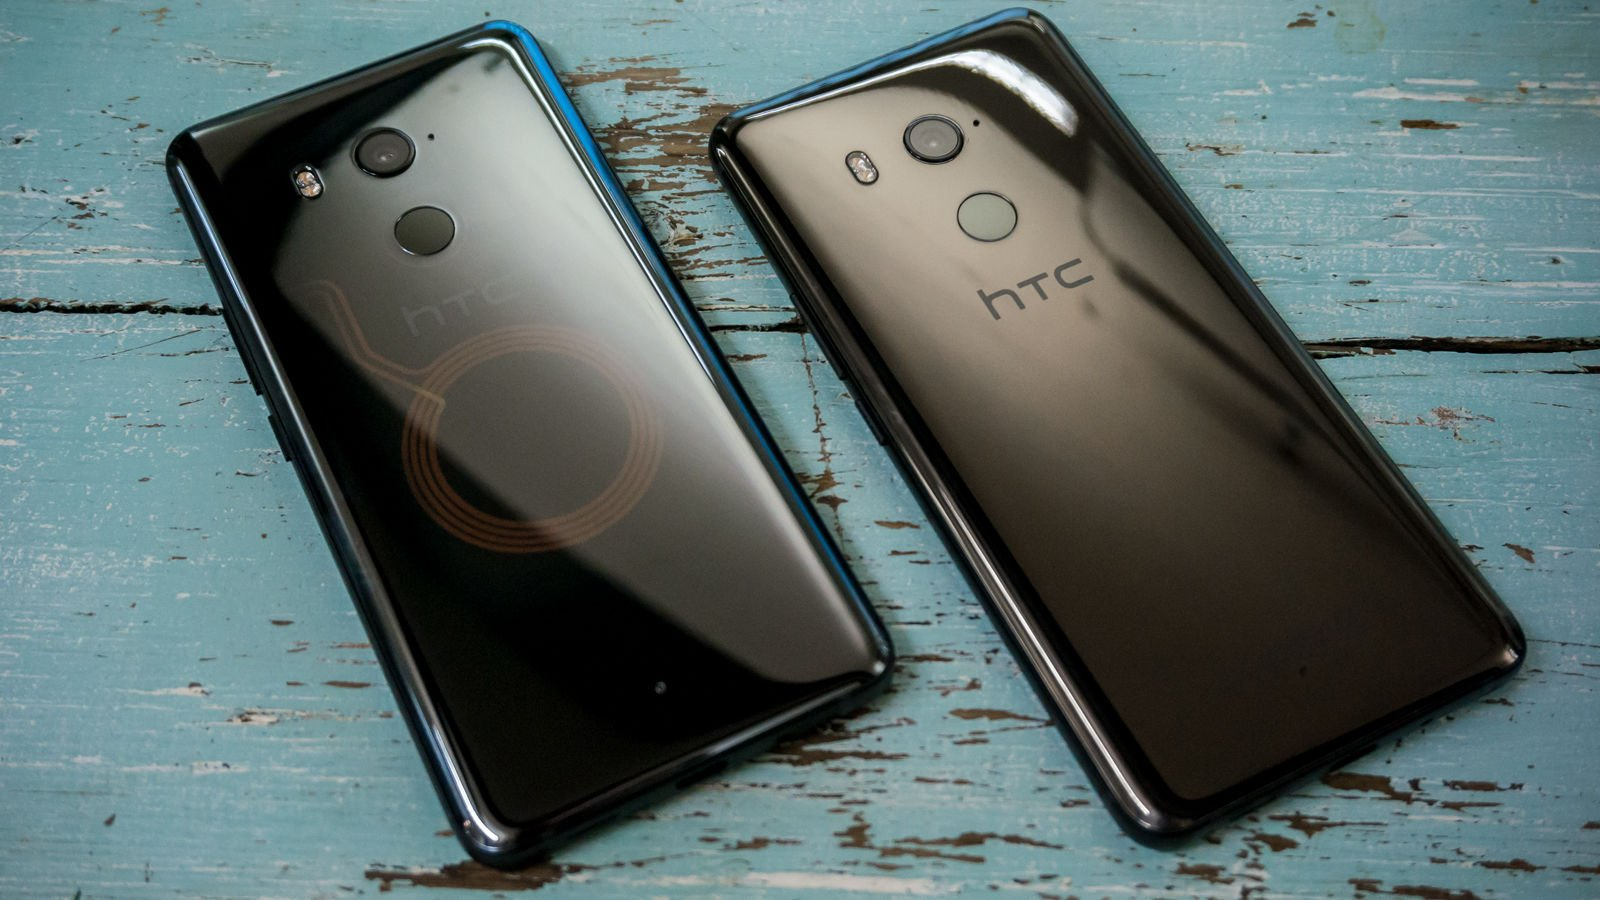 How to Root HTC U11+ with Magisk without TWRP